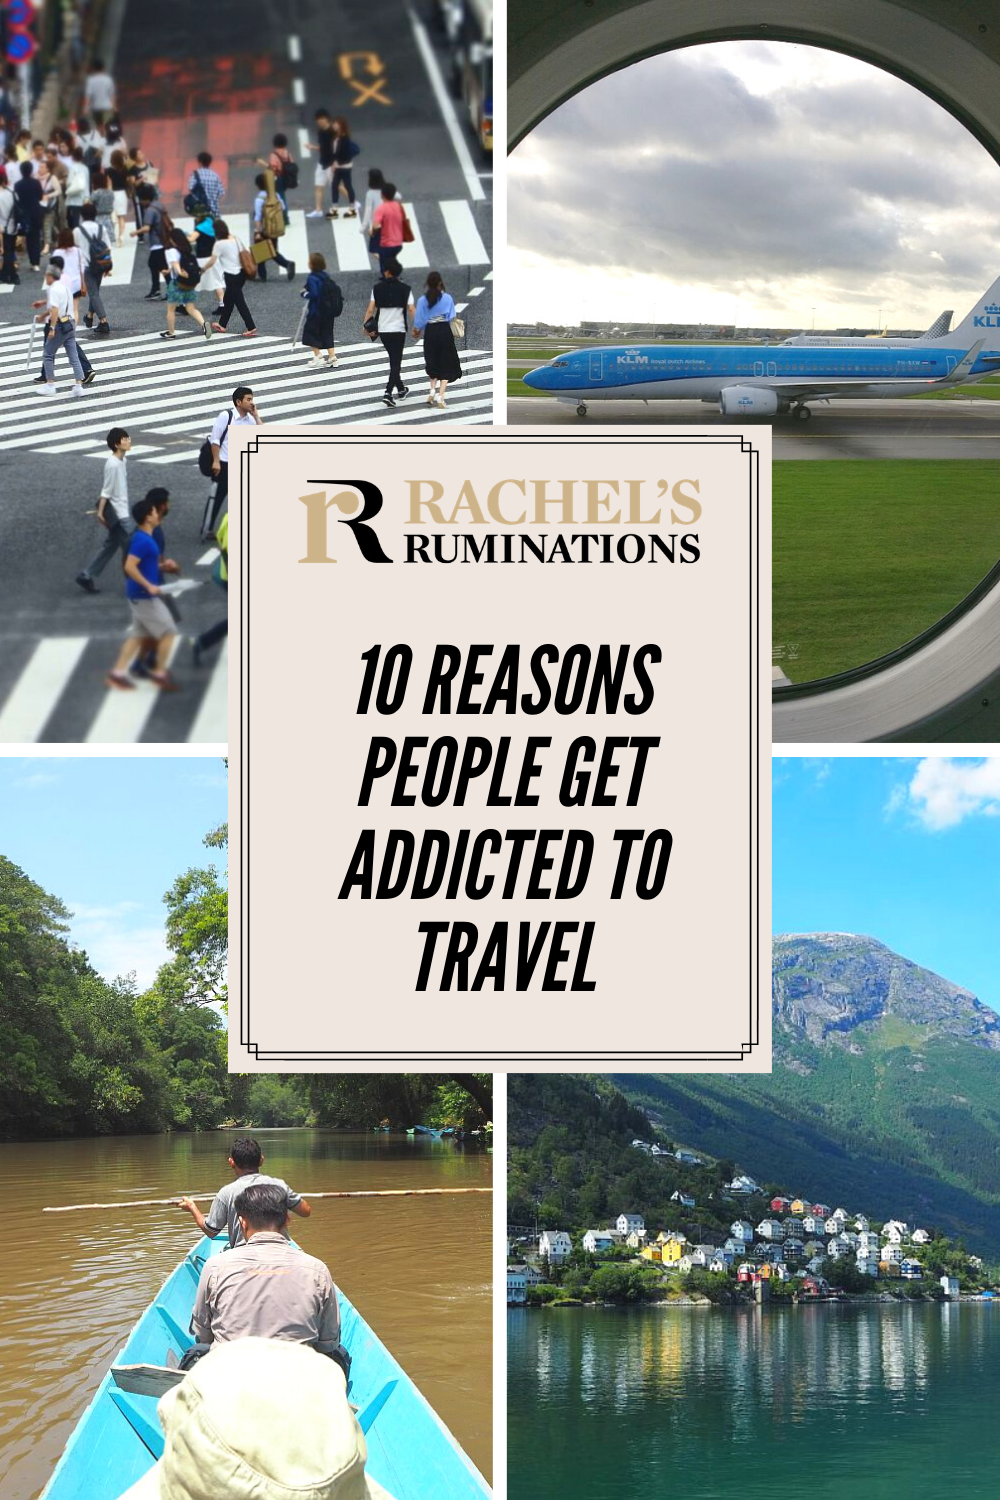 In a guest post, Danny Newman explains the 10 reasons people get addicted to travel. #travel #wanderlust Are you addicted? via @rachelsruminations